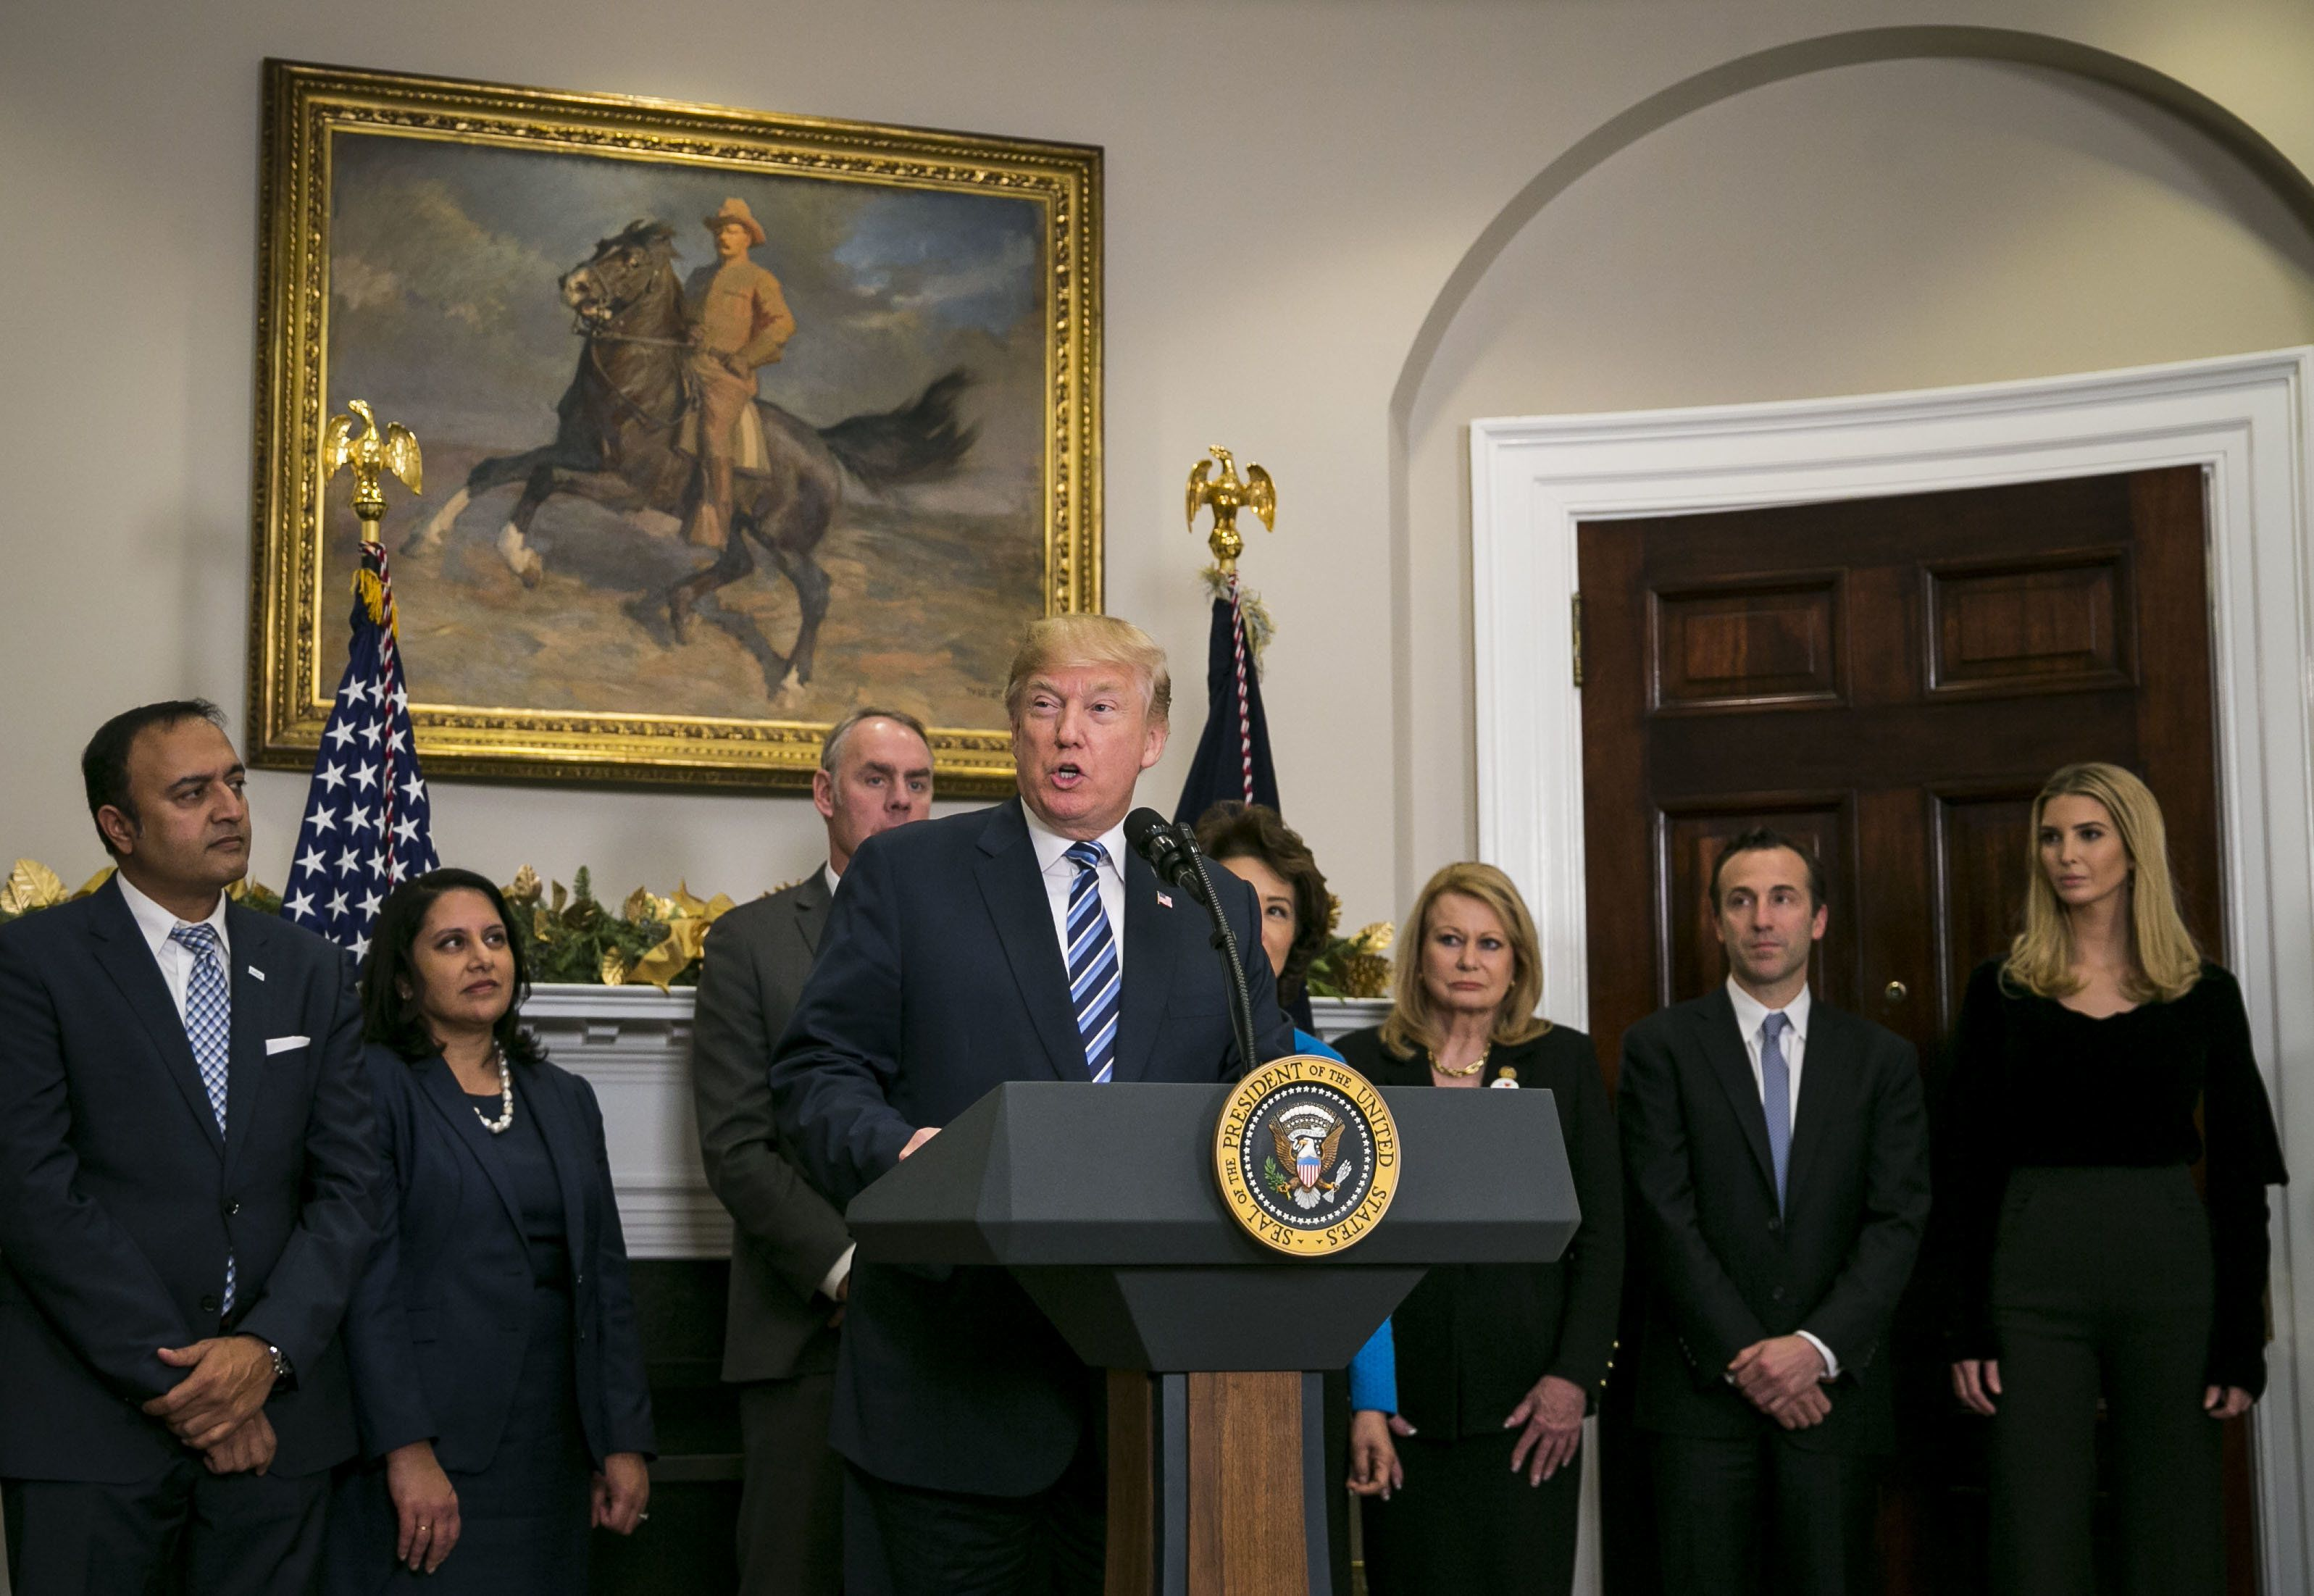 U.S. President Donald Trump speaks during an event in the Roosevelt Room of the White House, Thursday, Dec. 14, 2017. Trump trumpeted his effort to slash government rules as 'the most far-reaching regulatory reform in history.' Photographer: Al Drago/Bloomberg via Getty Images